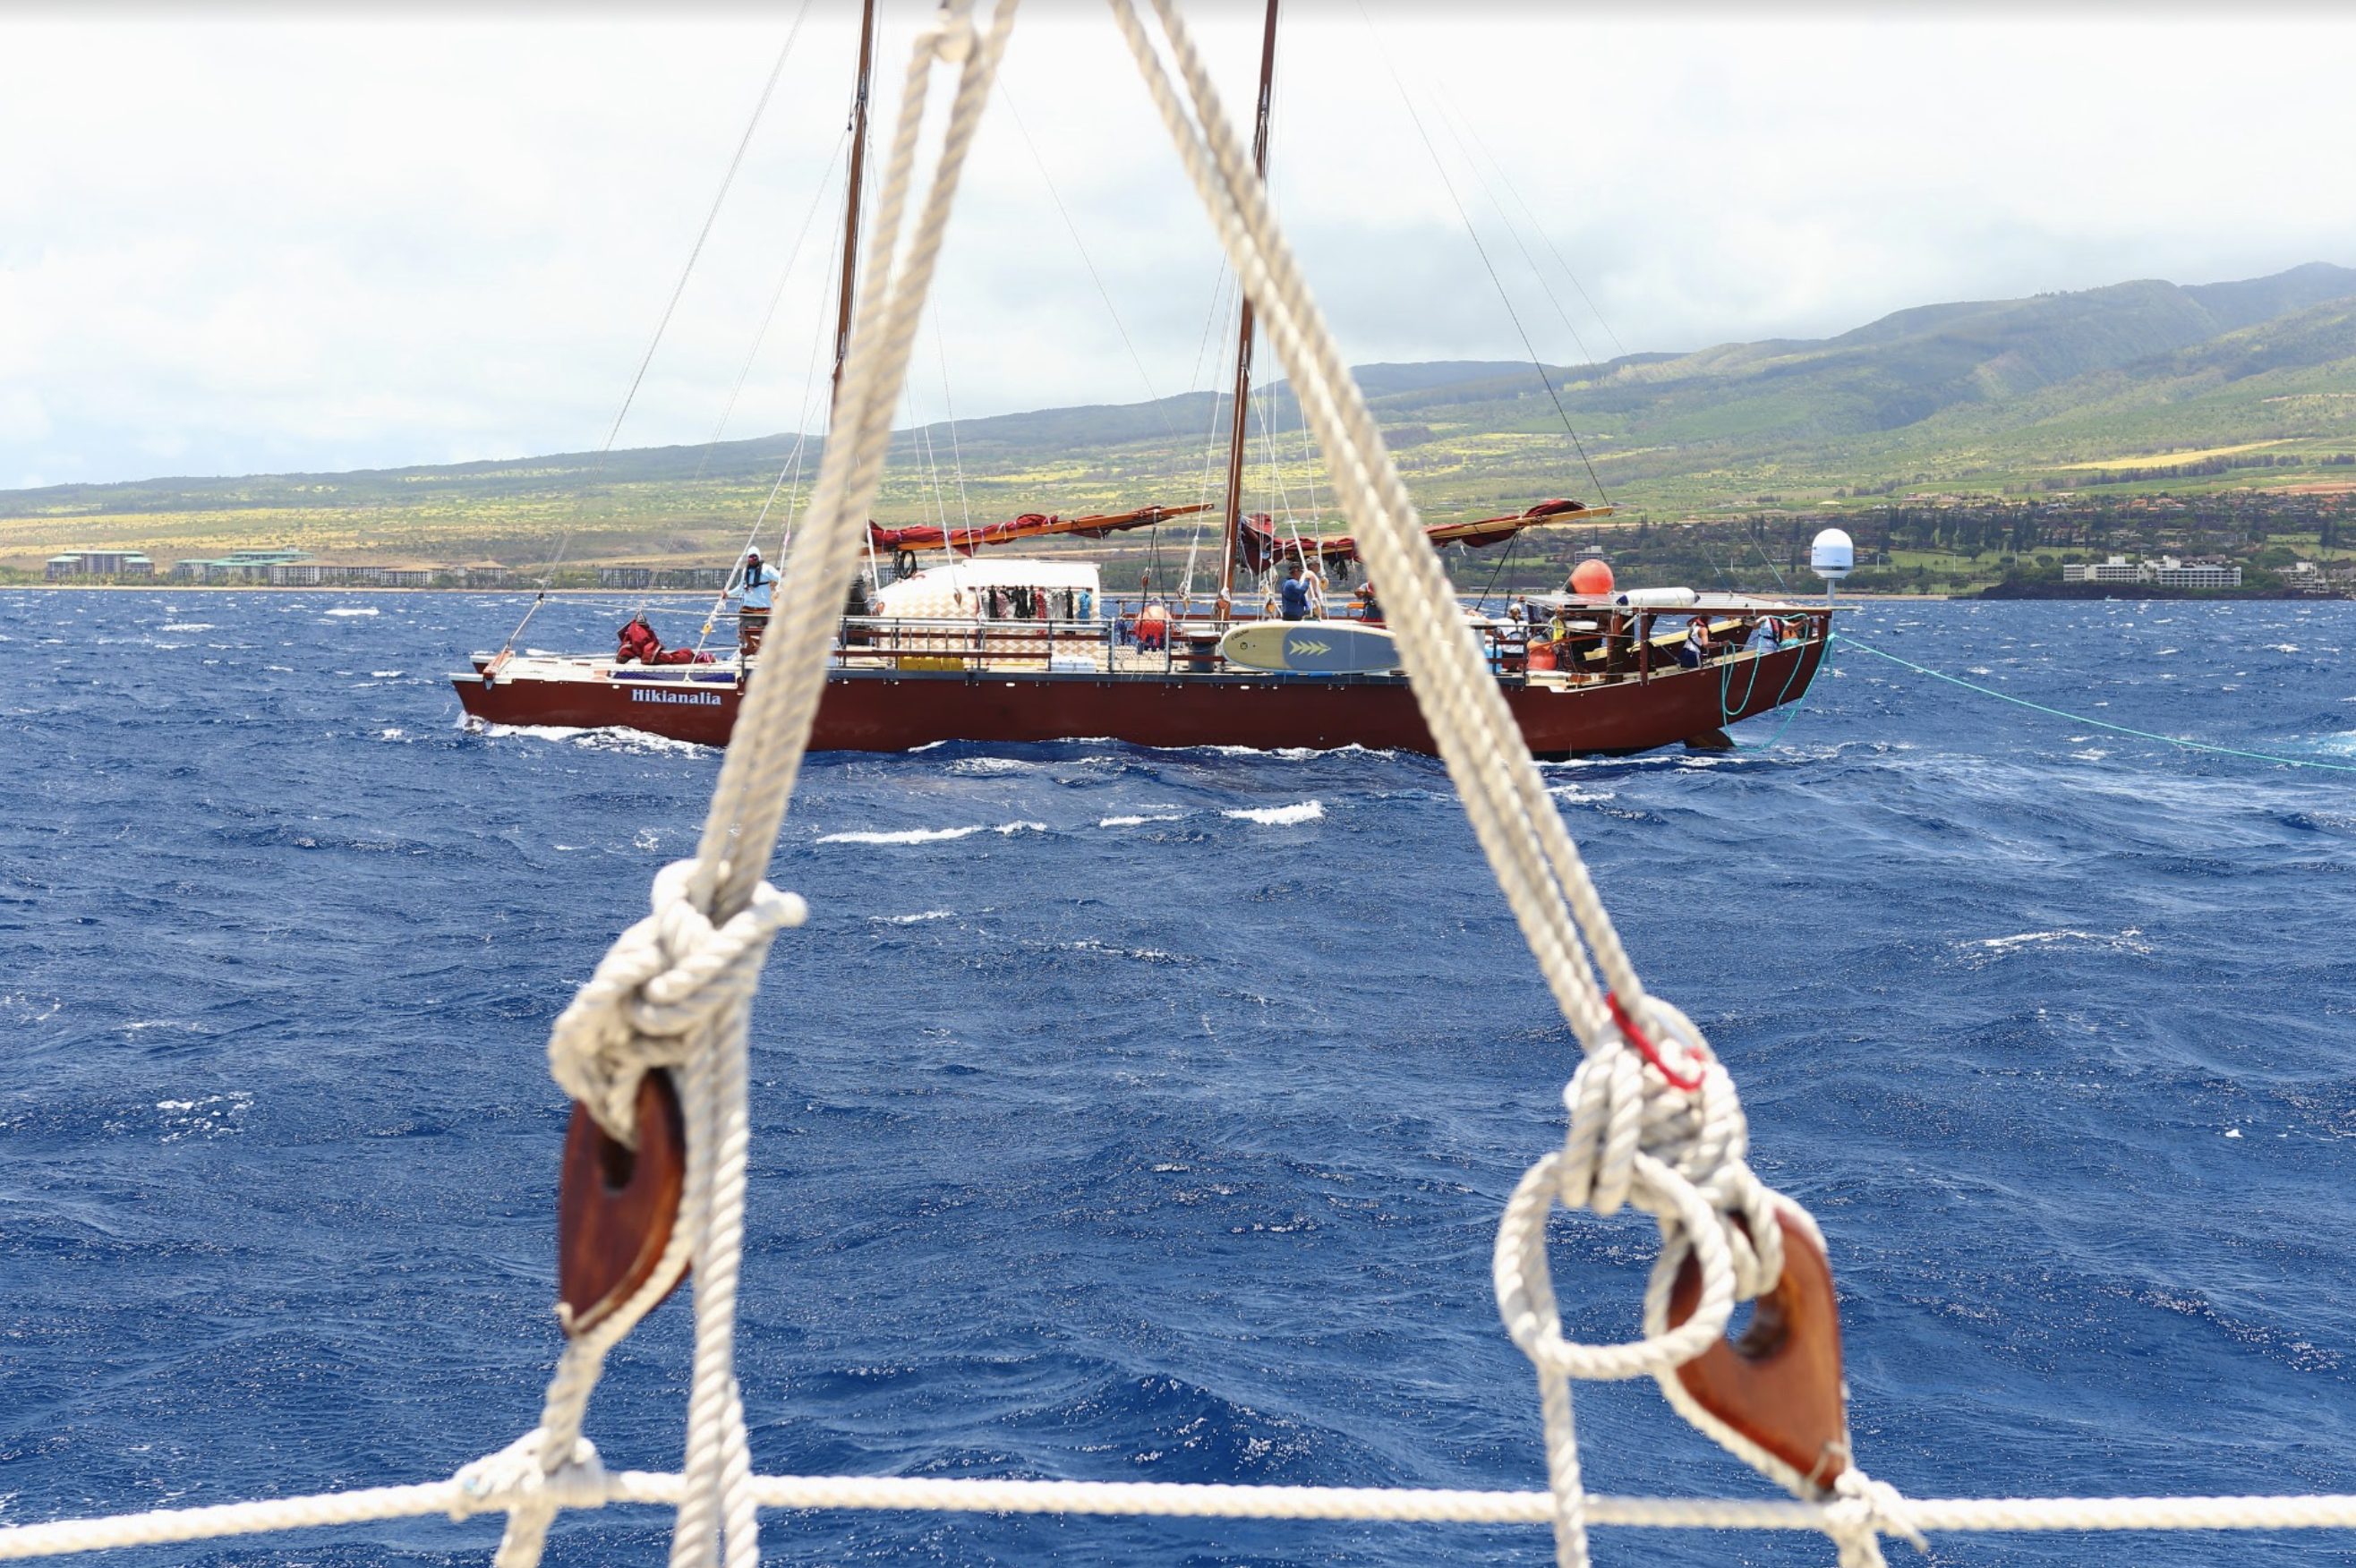 High Winds May Delay Hōkūleʻa and Hikianalia's Departure from Lahaina Until the Weekend